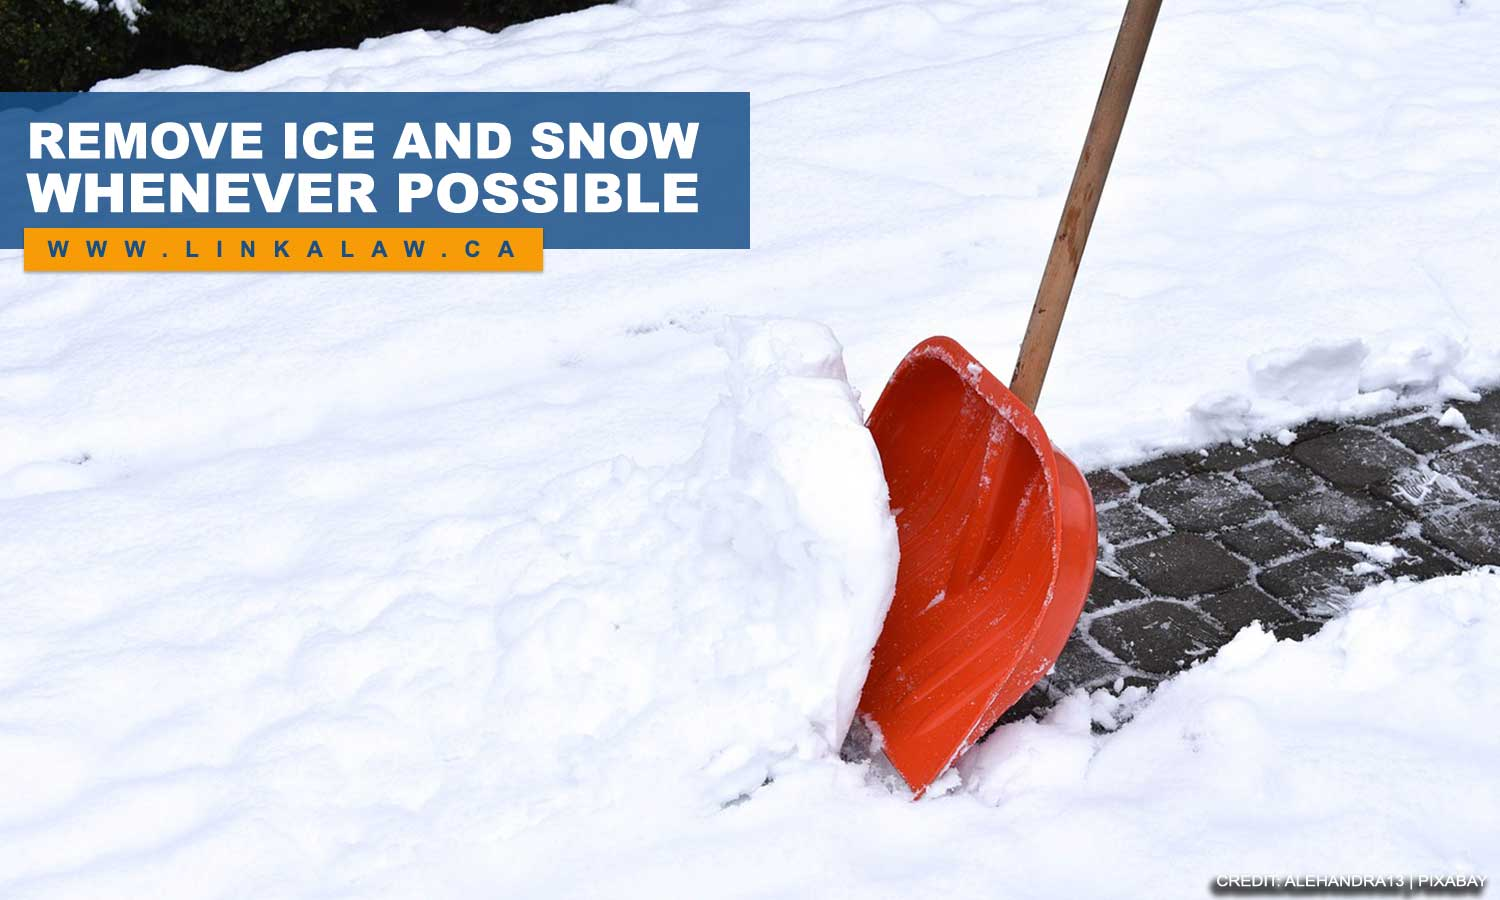 Remove ice and snow whenever possible